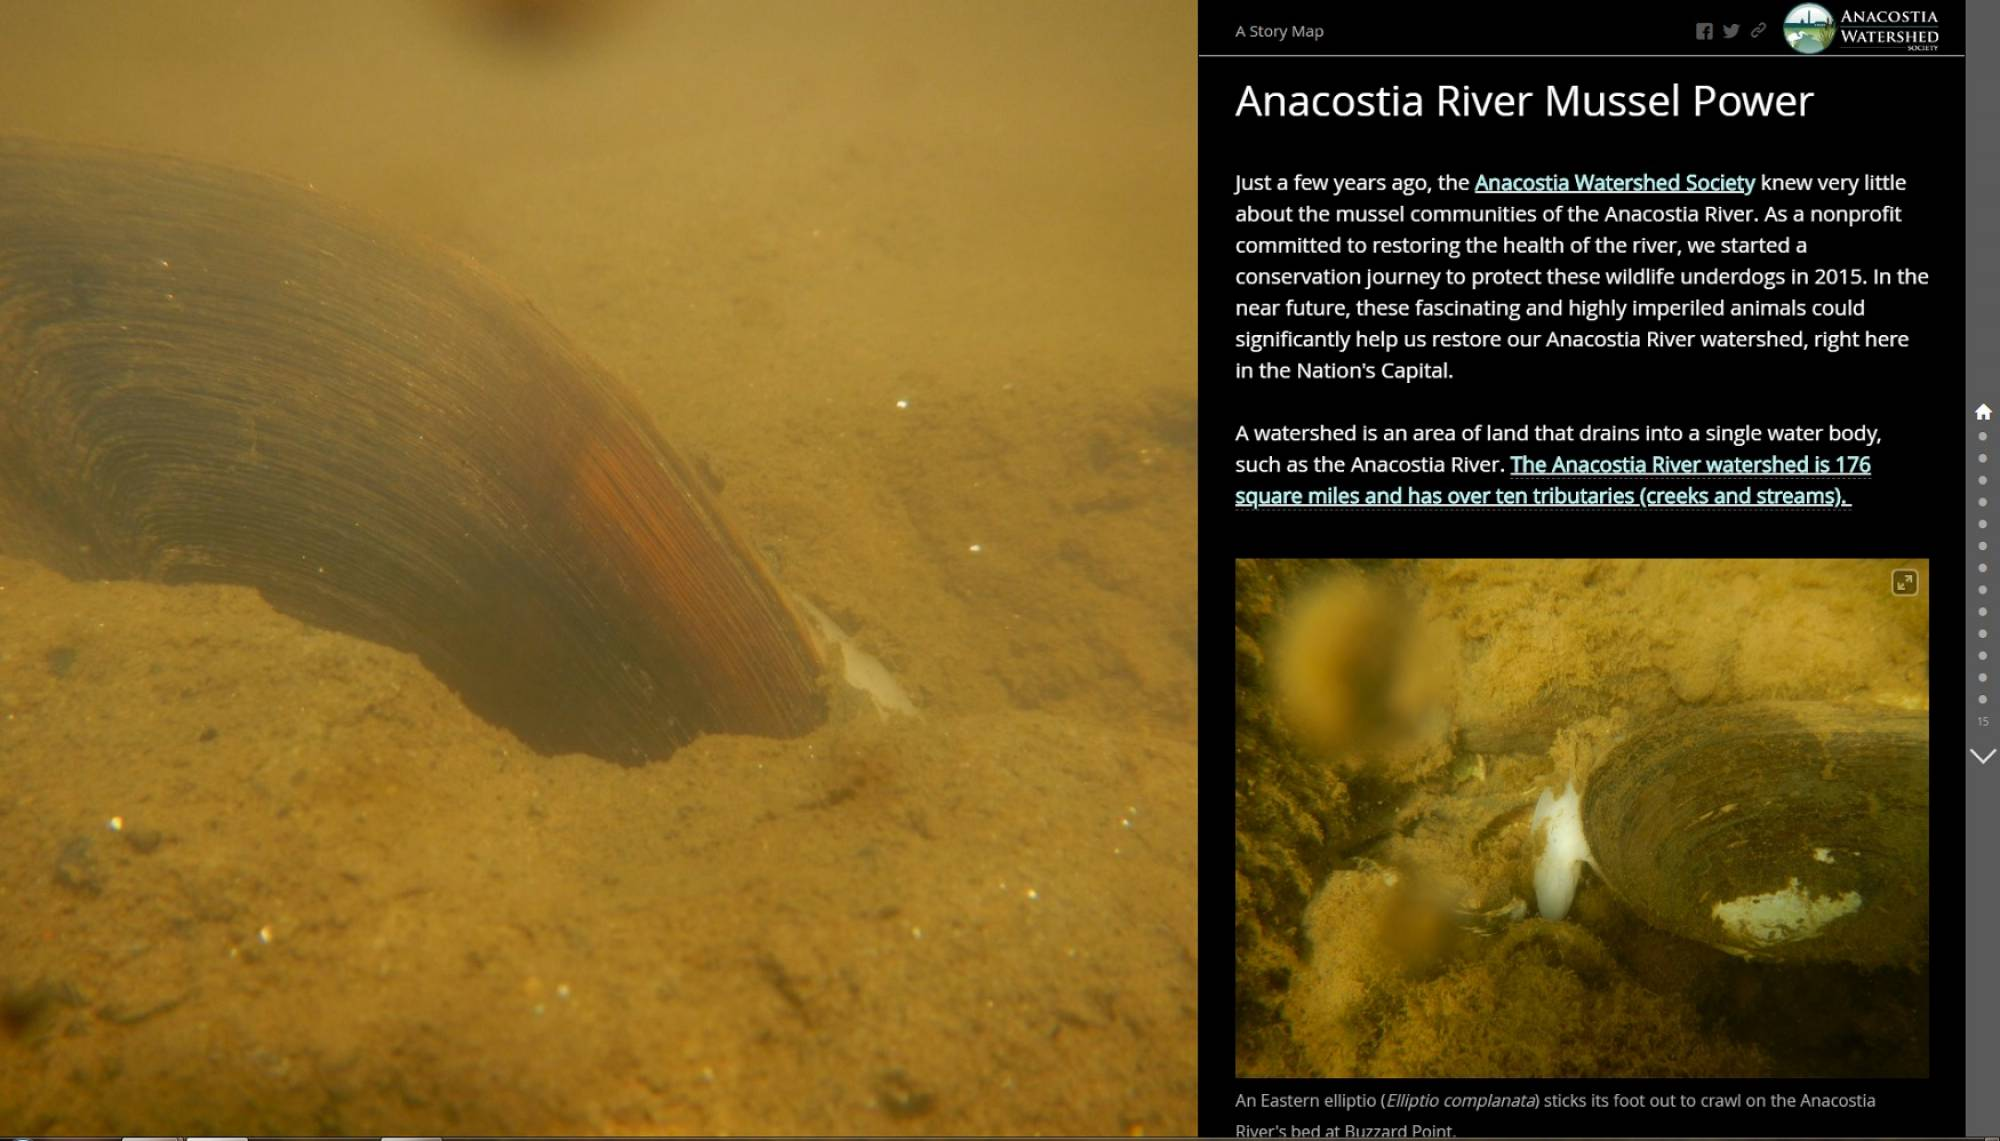 Anacostia River #MusselPower: The Story Map